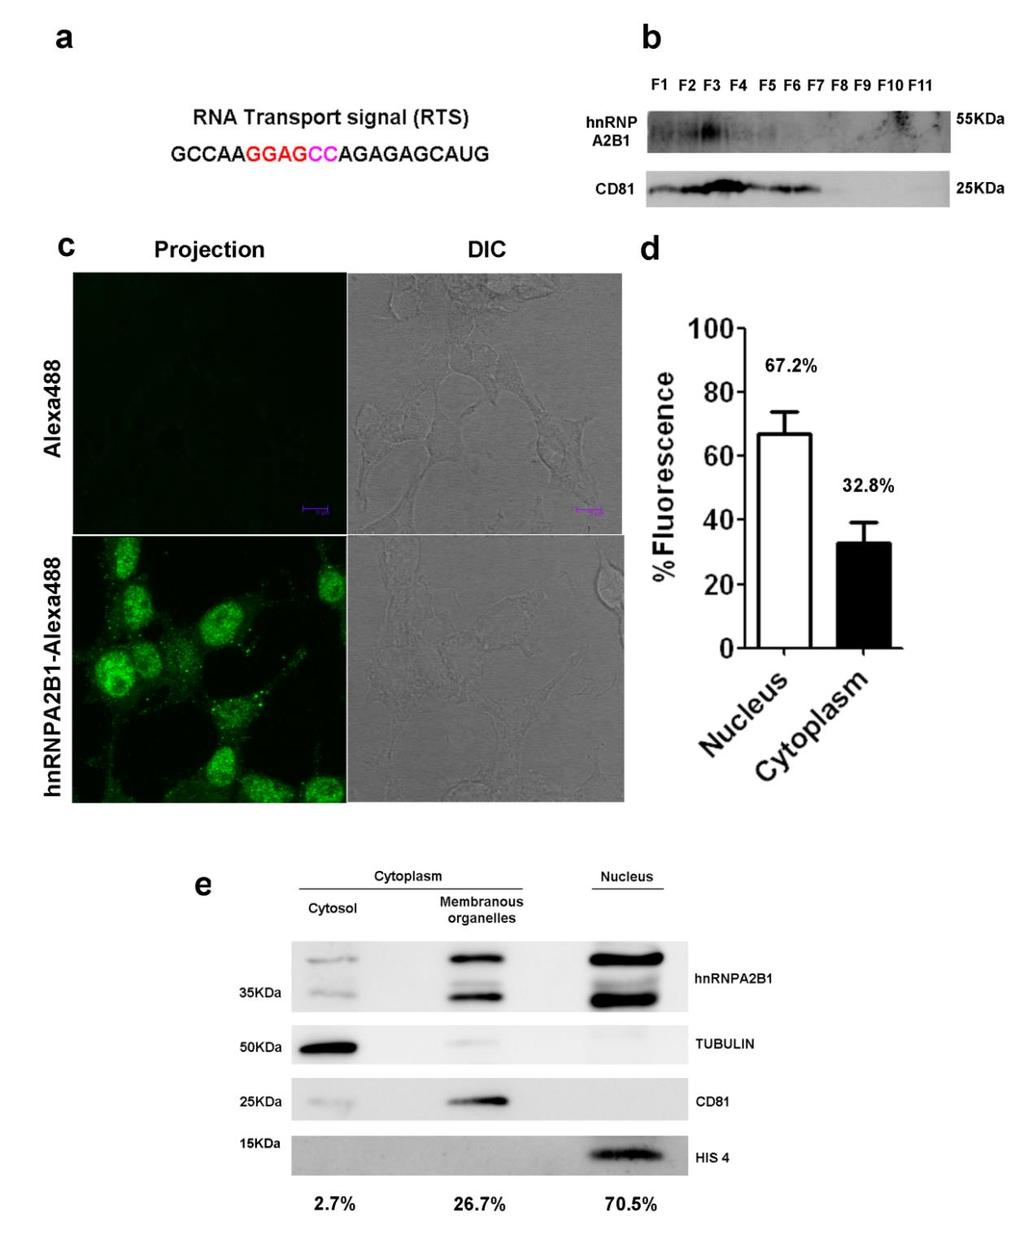 Supplementary Figure S4. HnRNPA2B1 presence in exosomes (a) RNA transport signal sequence (RTS) (b) Western blot showing hnrnpa2b1 and CD81 enrichment in sucrose fraction 3.